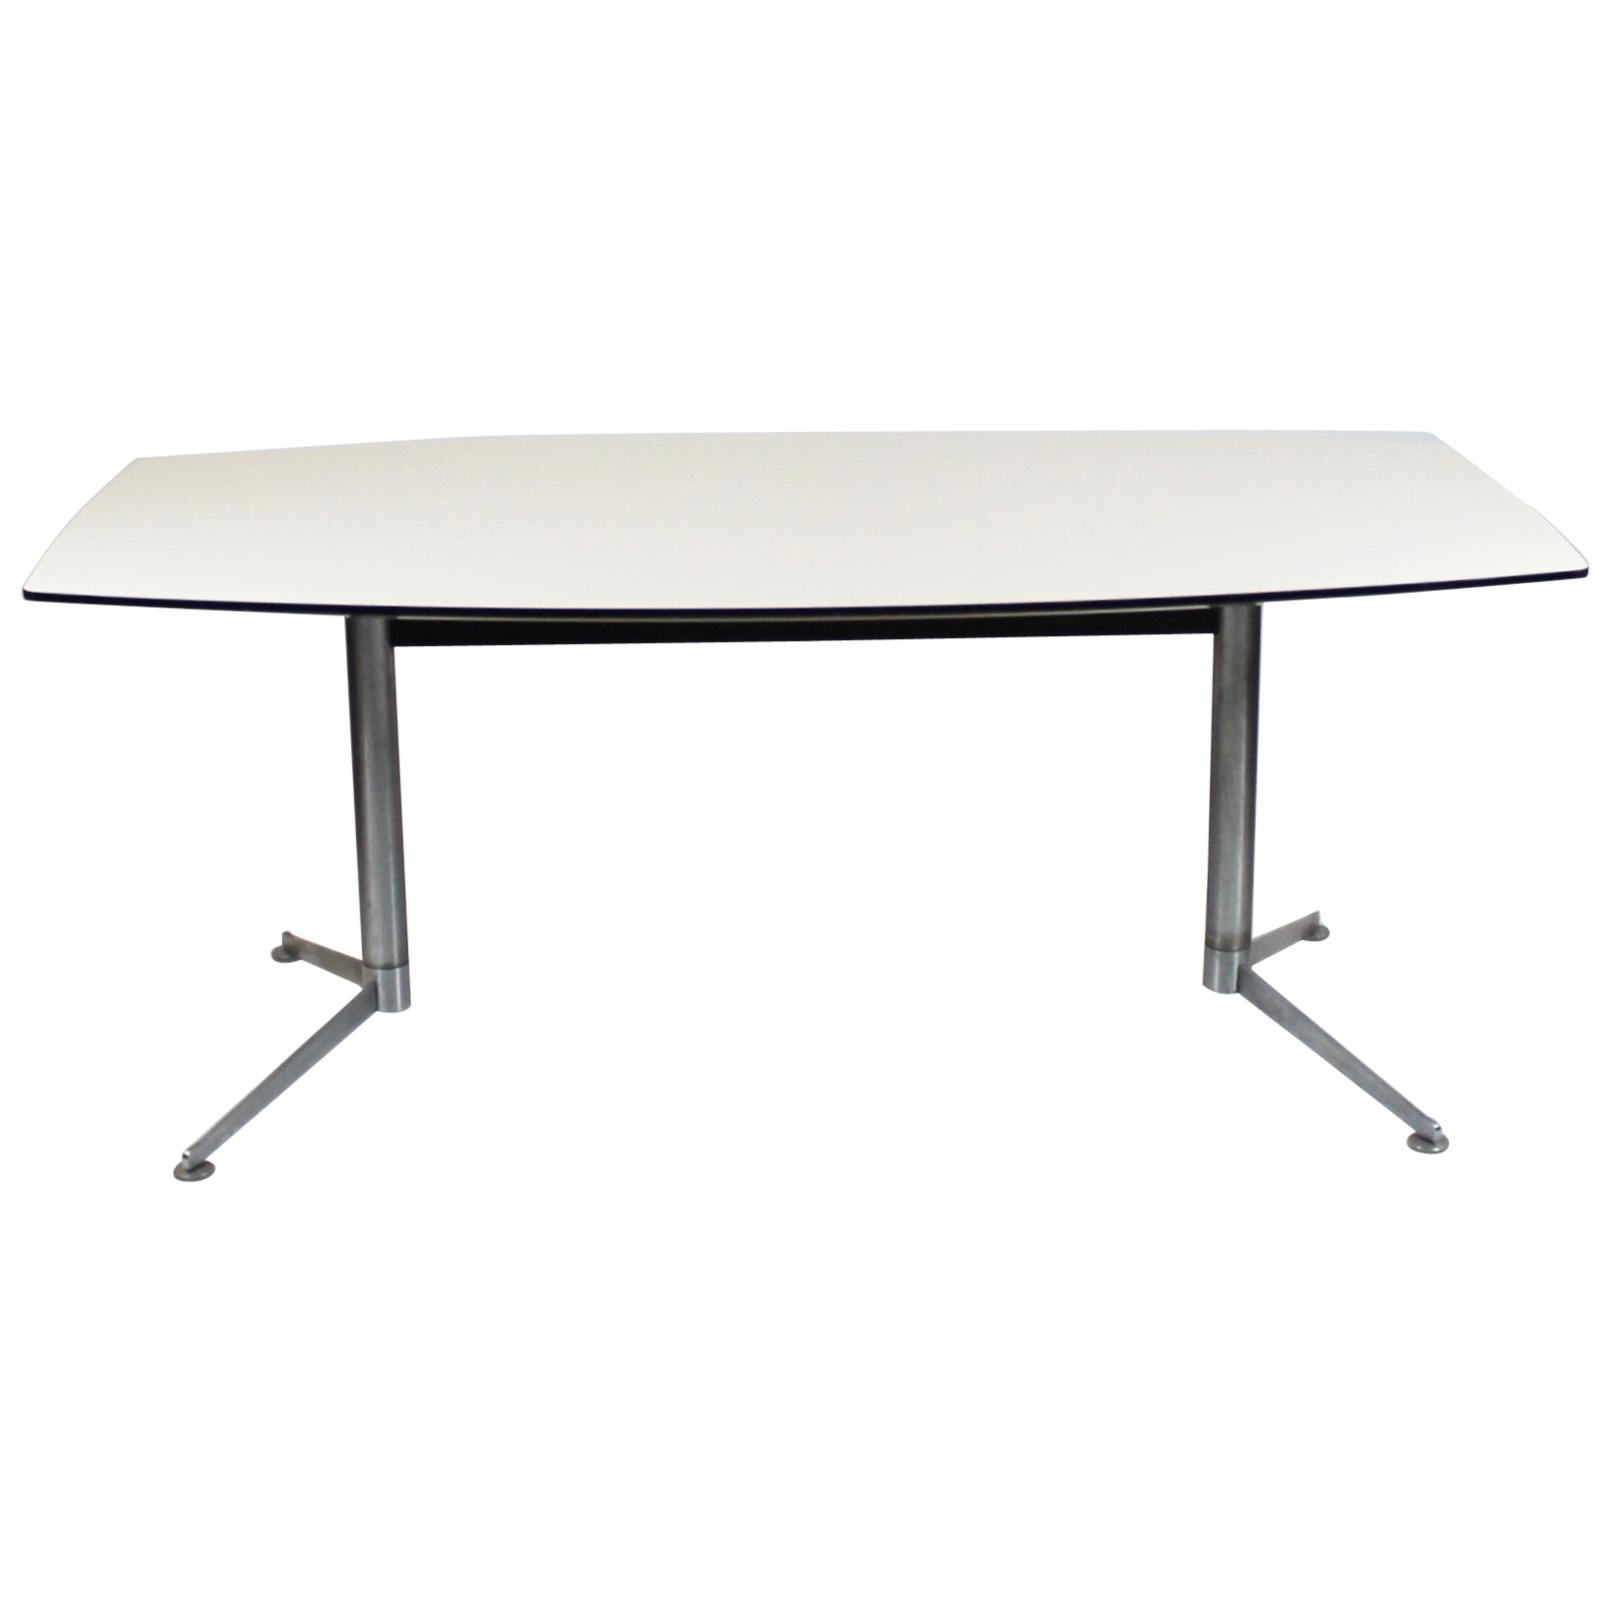 Dining Table Designed by Charles and Ray Eames